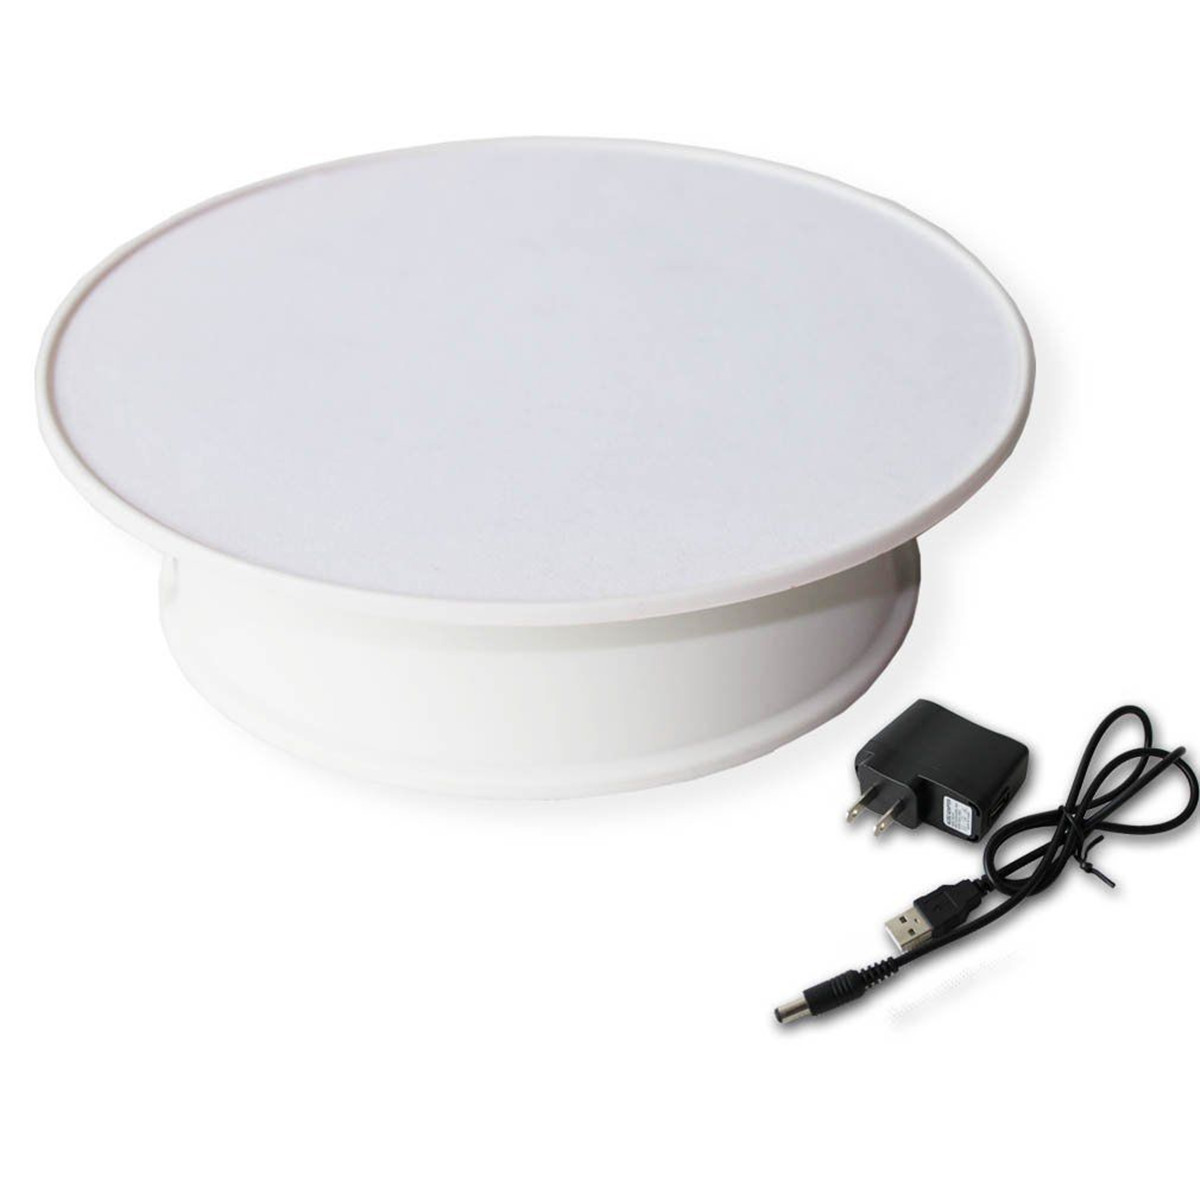 New 20CM Rotating Turntable Decorating Revolving Modelling Tool Display Stand Plate For Jewelry Watch Digital Product Holder